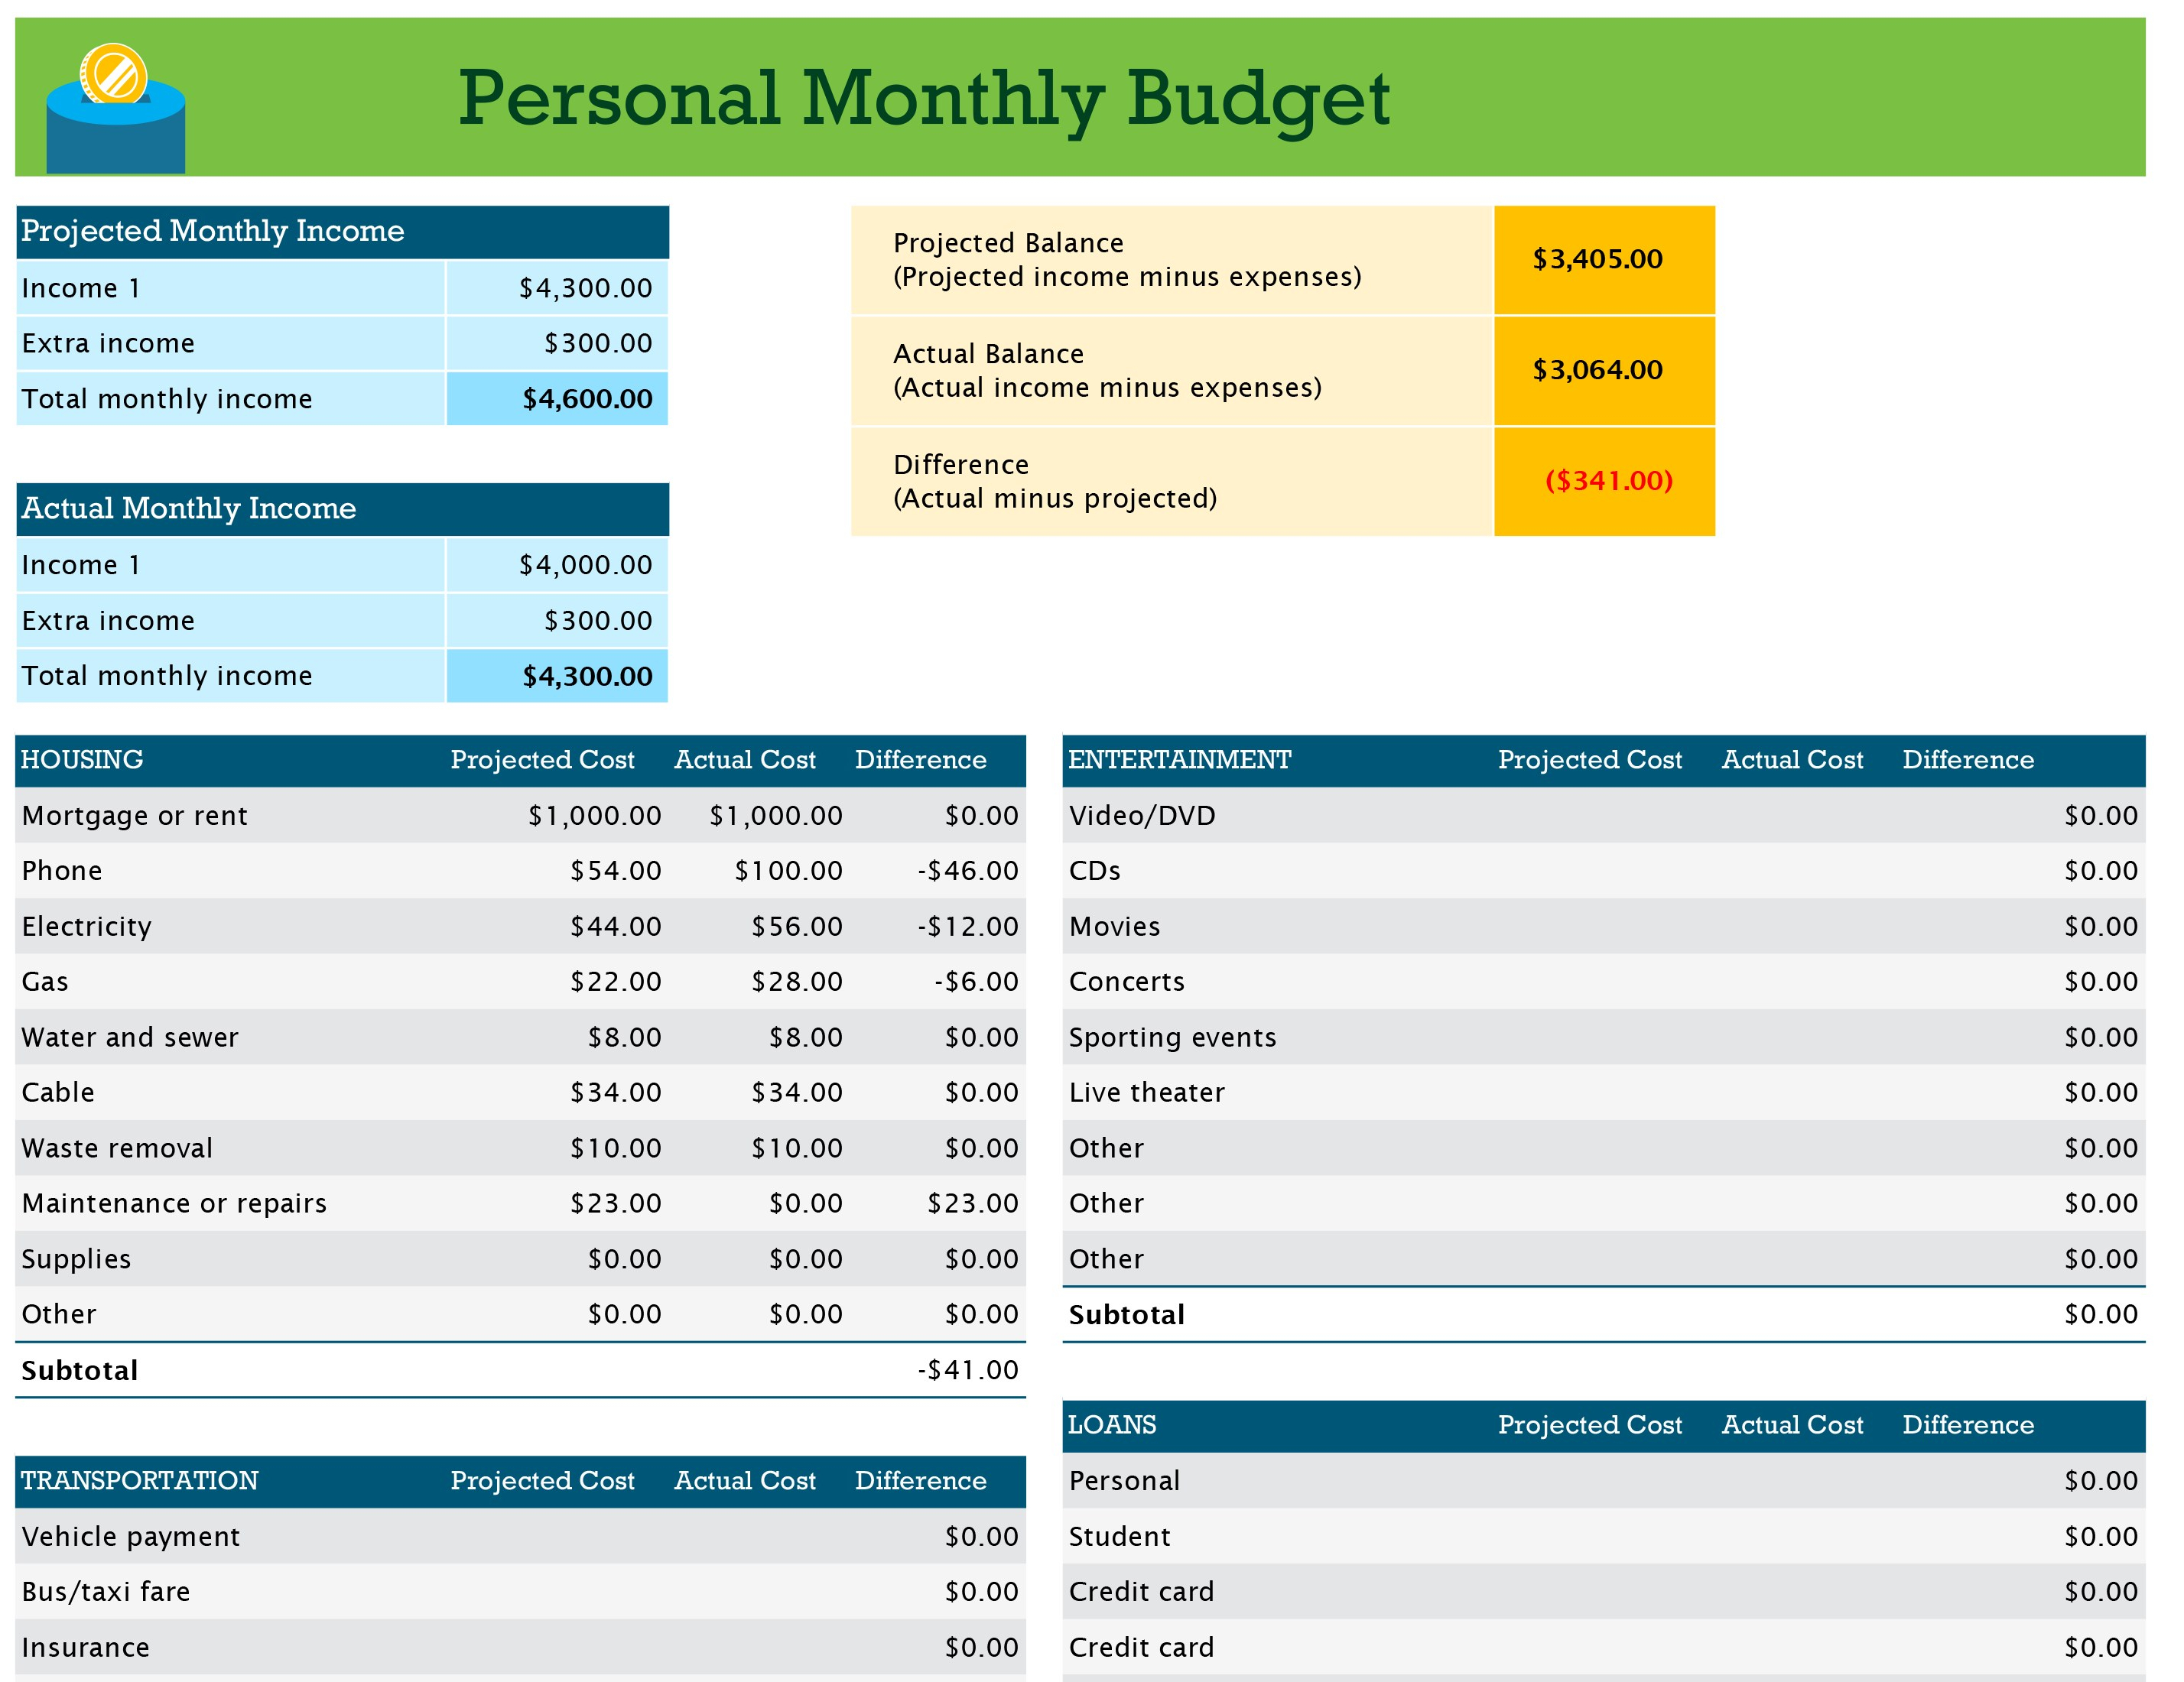 Personal Budget Spreadsheet Excel Regarding Personal Monthly Budget Excel